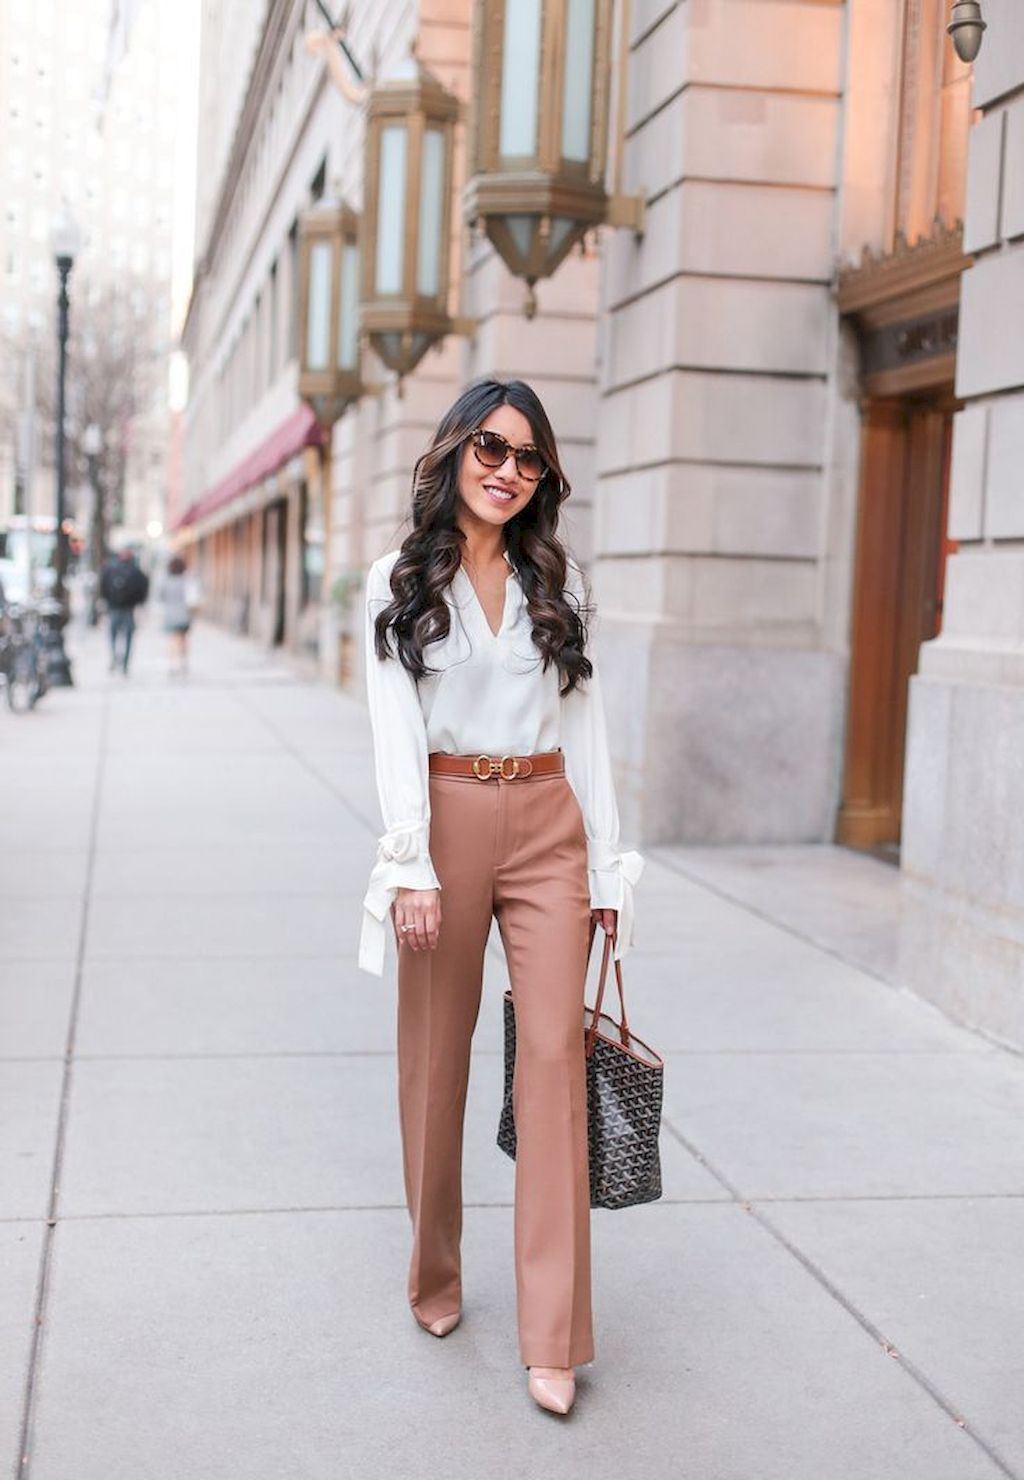 30 Best Business Casual Outfit Ideas for Women | Best ...